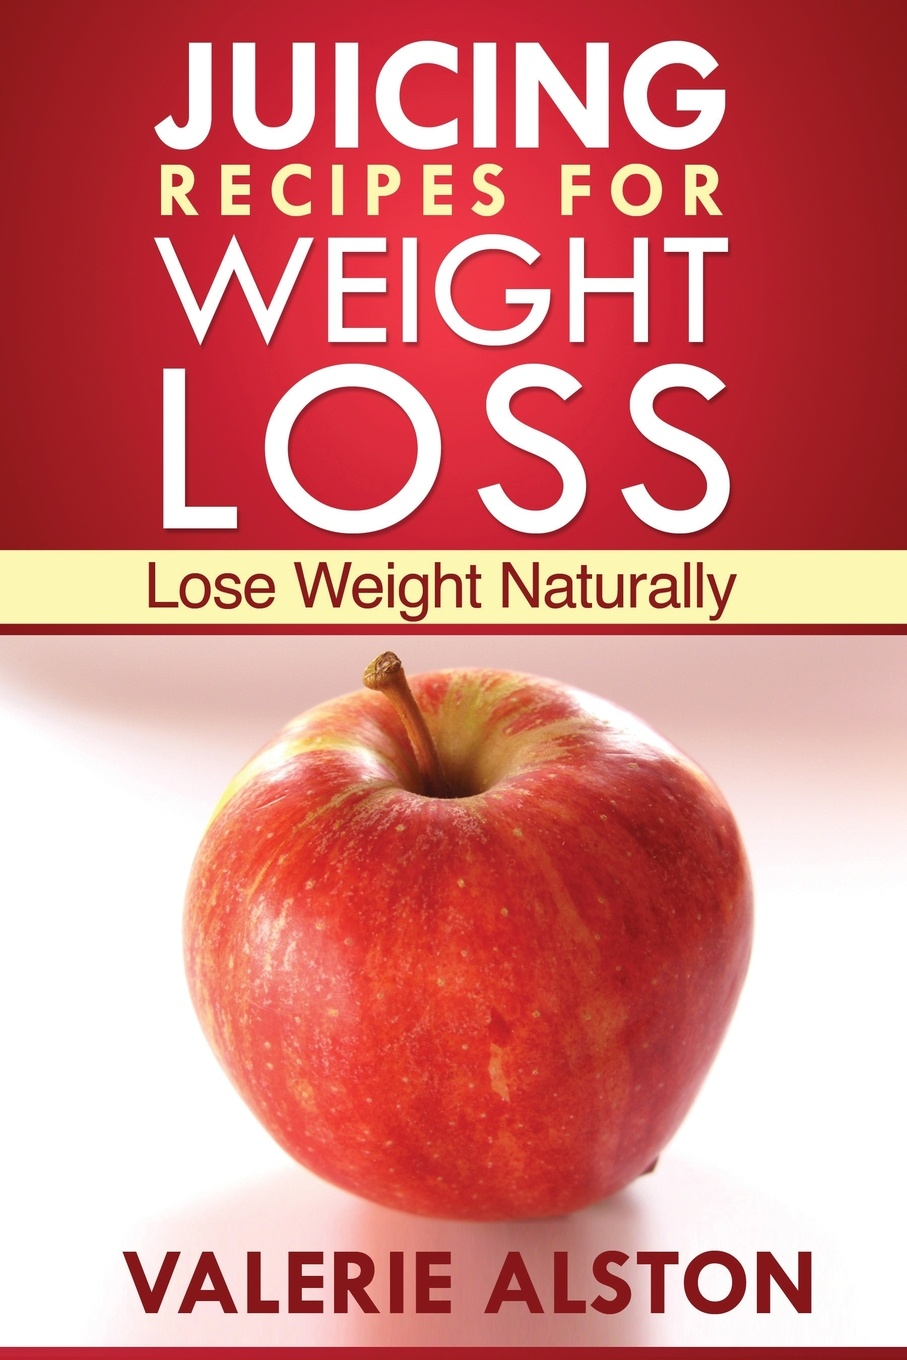 Фото - Alston Valerie Juicing Recipes for Weight Loss. Lose Weight Naturally pat crocker juicing and smoothies for dummies